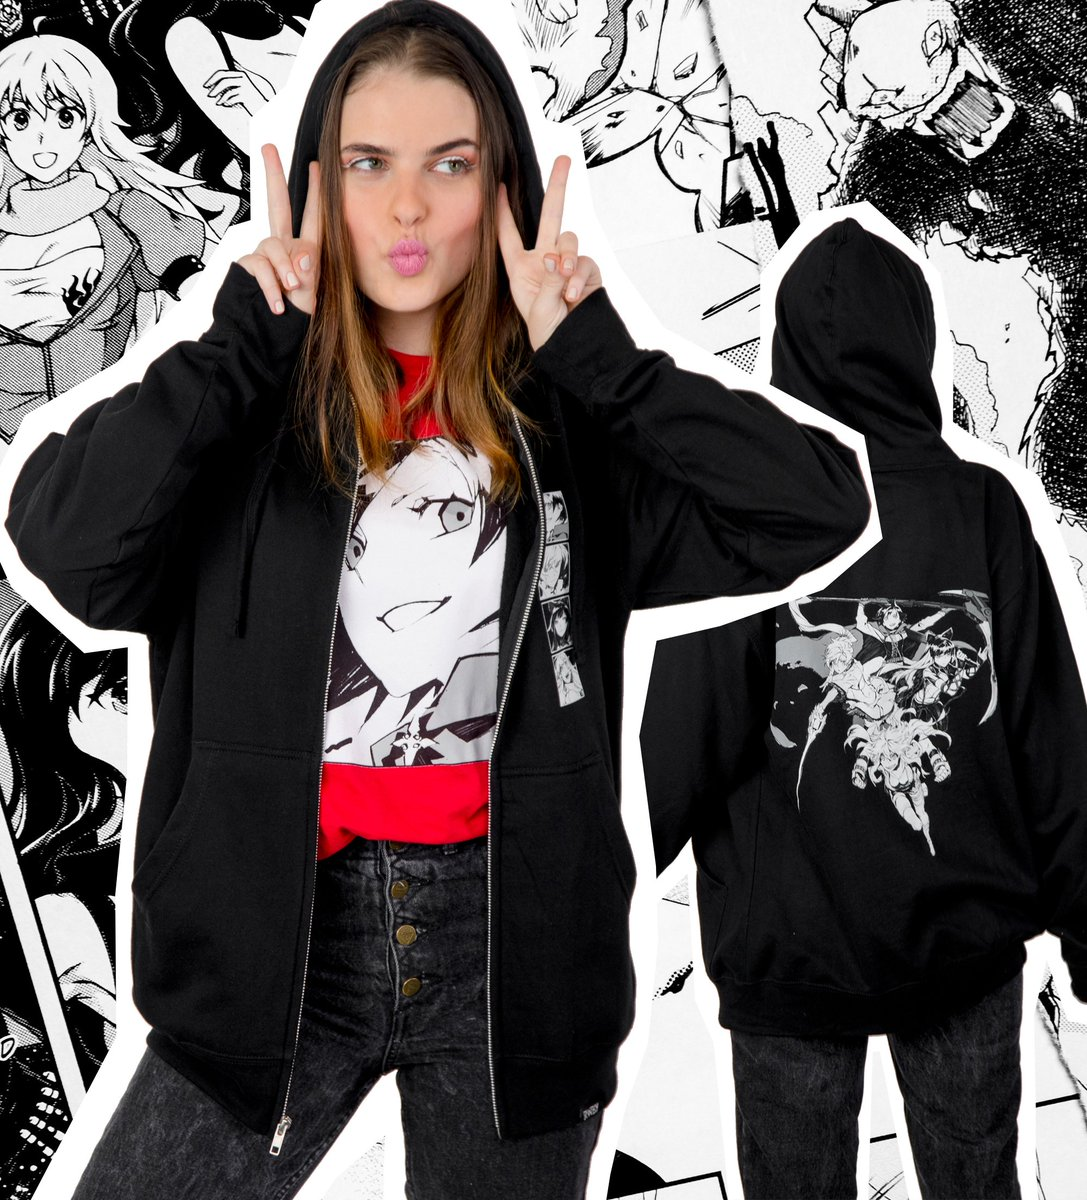 test Twitter Media - Take it off the page and onto the streets. Shop the new #RWBY Manga Ink collection now!  https://t.co/cR9MLXlplY https://t.co/ceNJZEN7C4